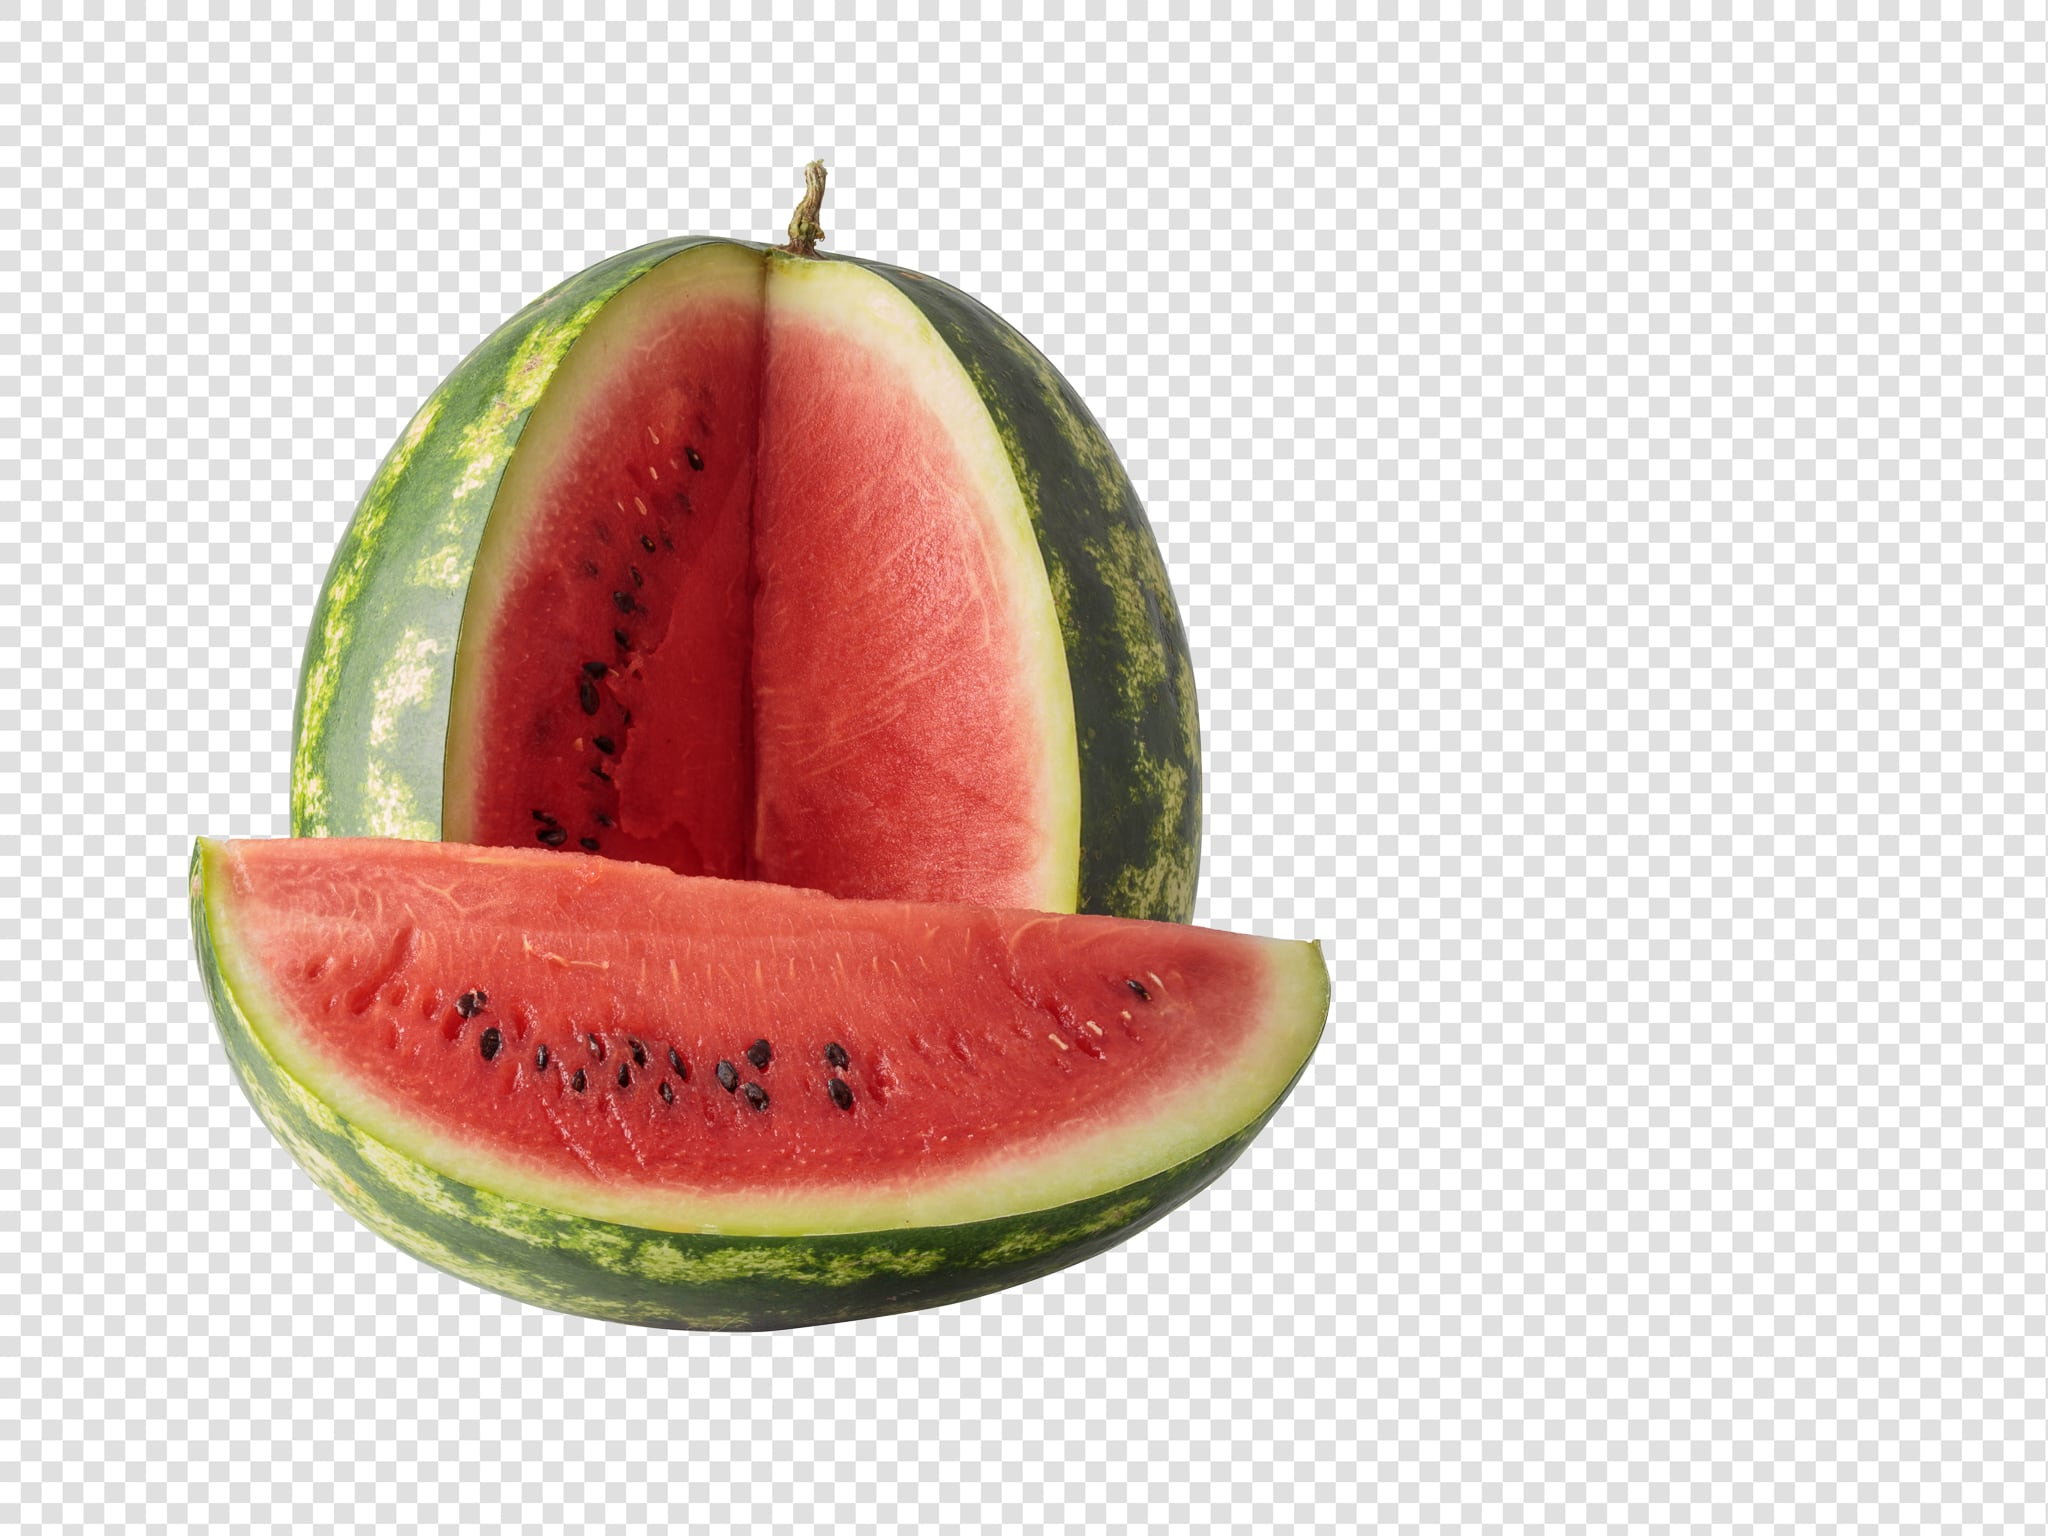 Watermelon image with transparent background